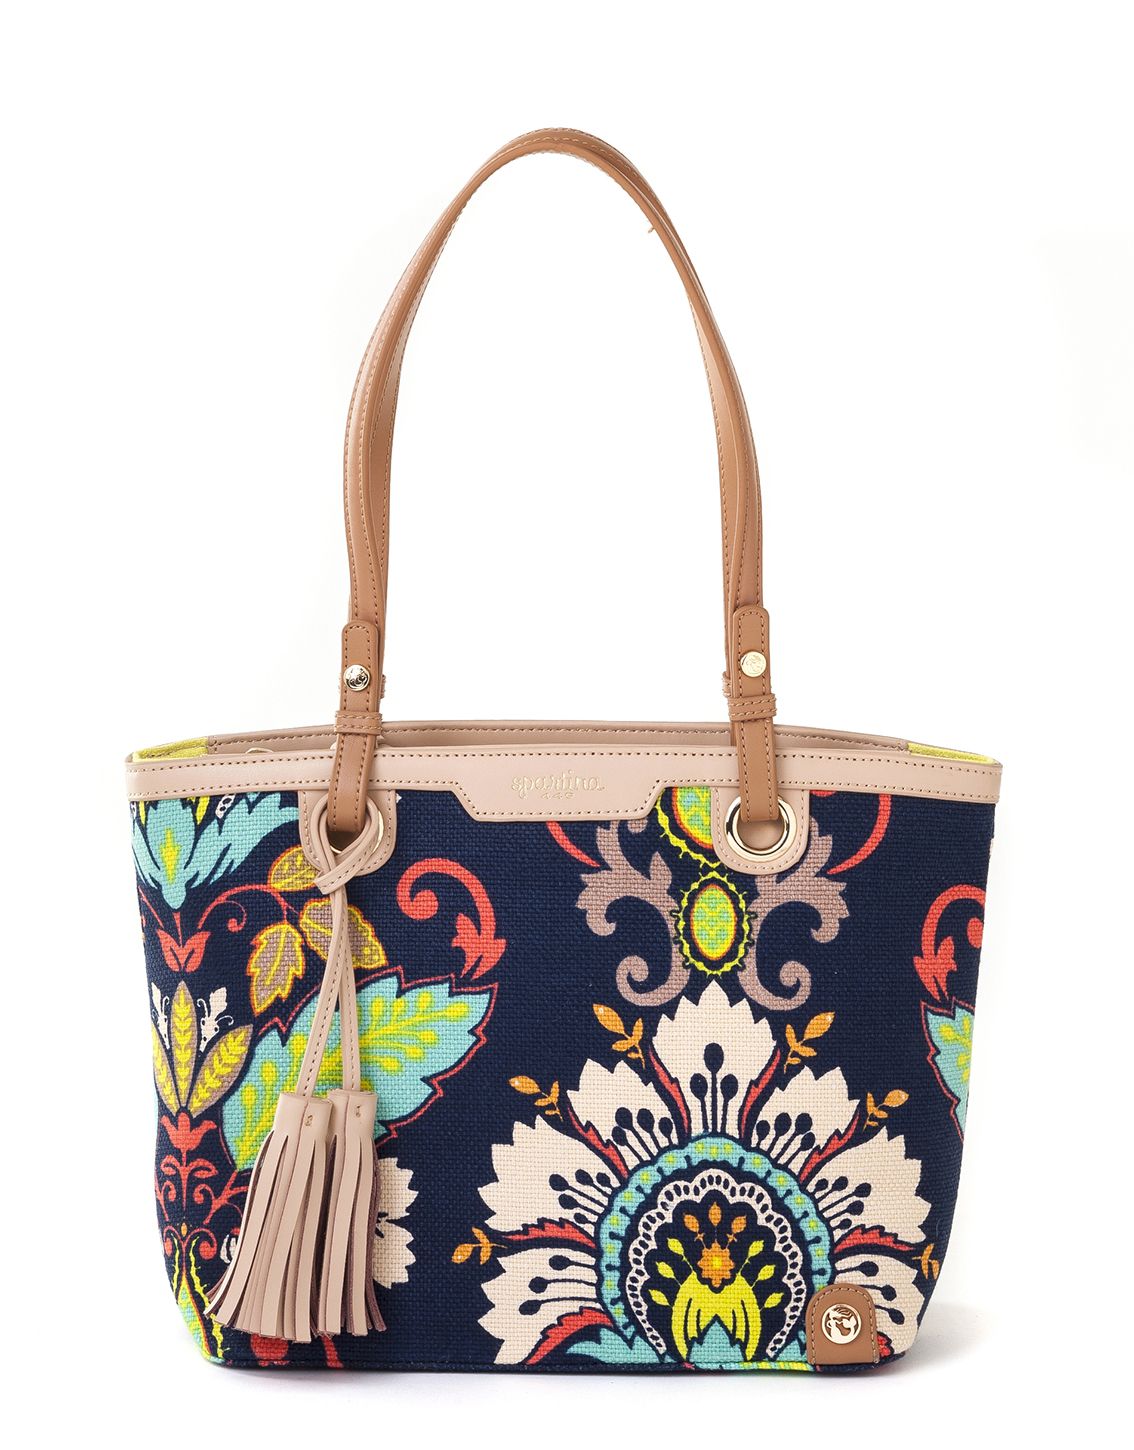 Amelia Island Tote By Spartina 449